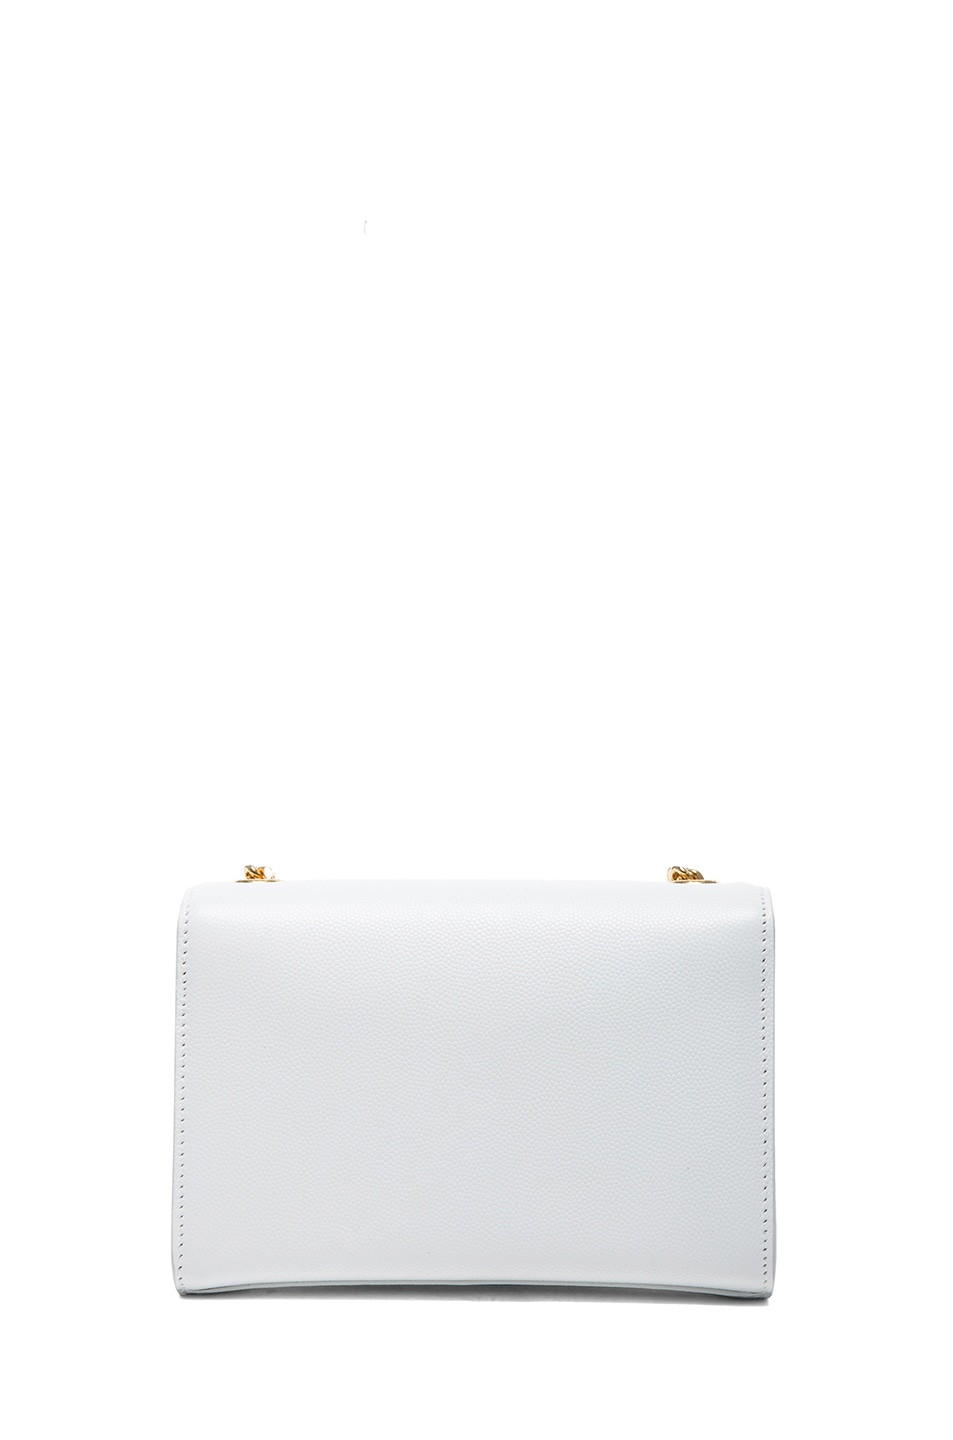 Image 2 of Saint Laurent Small Monogramme Chain Bag in Optic White